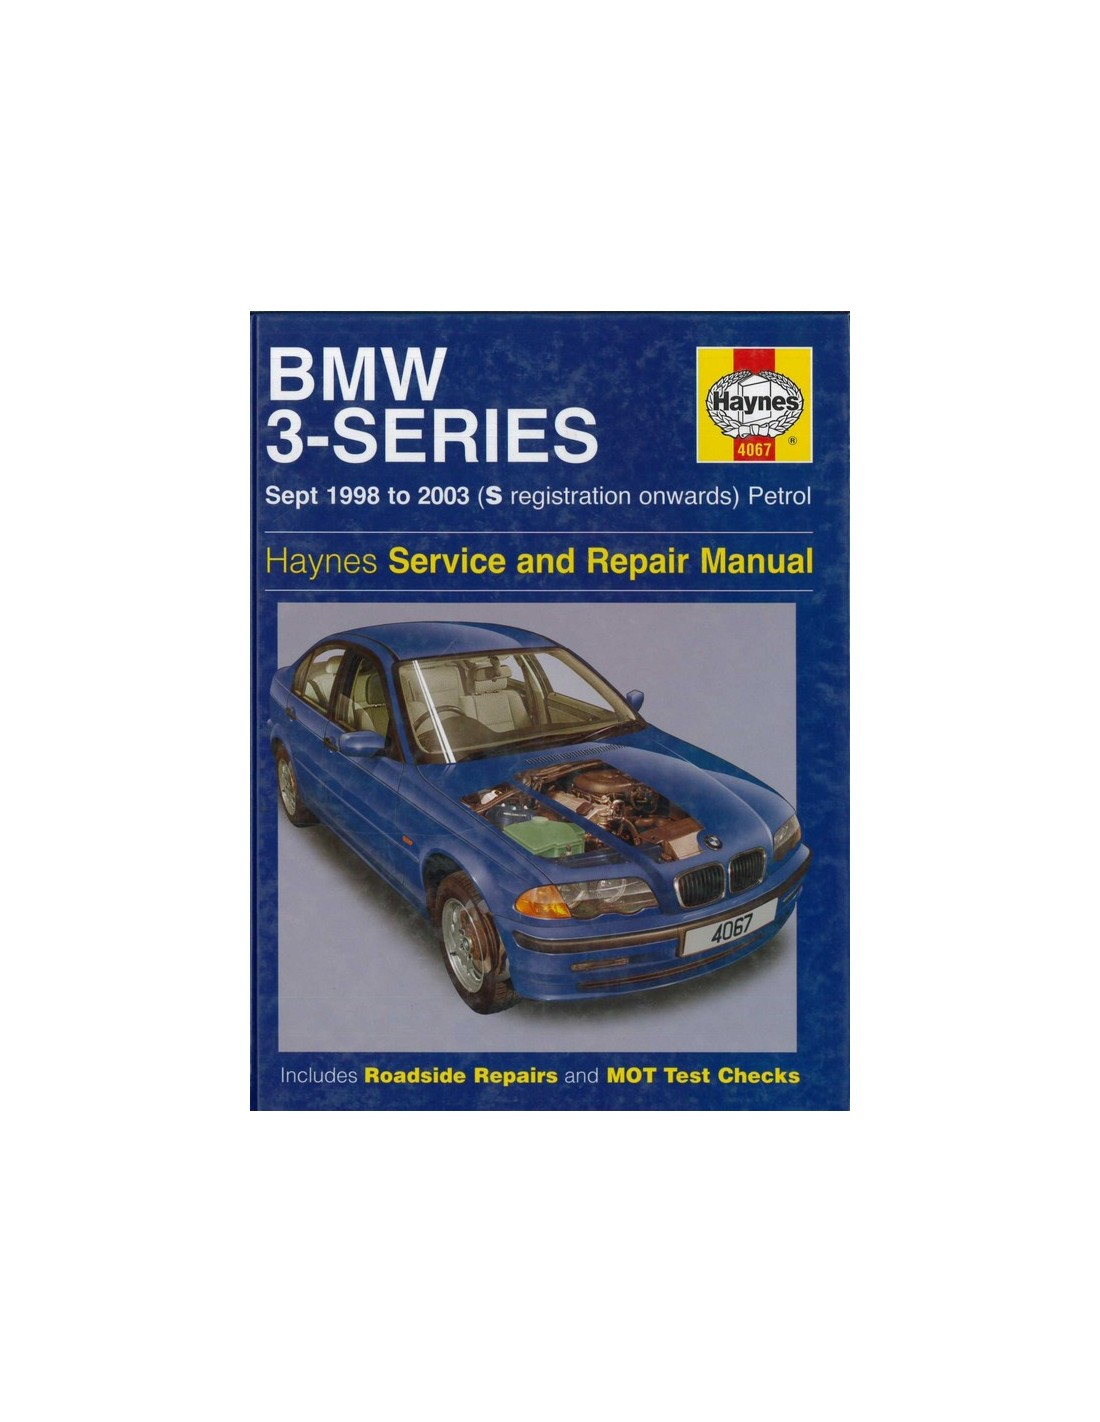 bmw e46 haynes manual cancel format hardcover paperback bmw 3